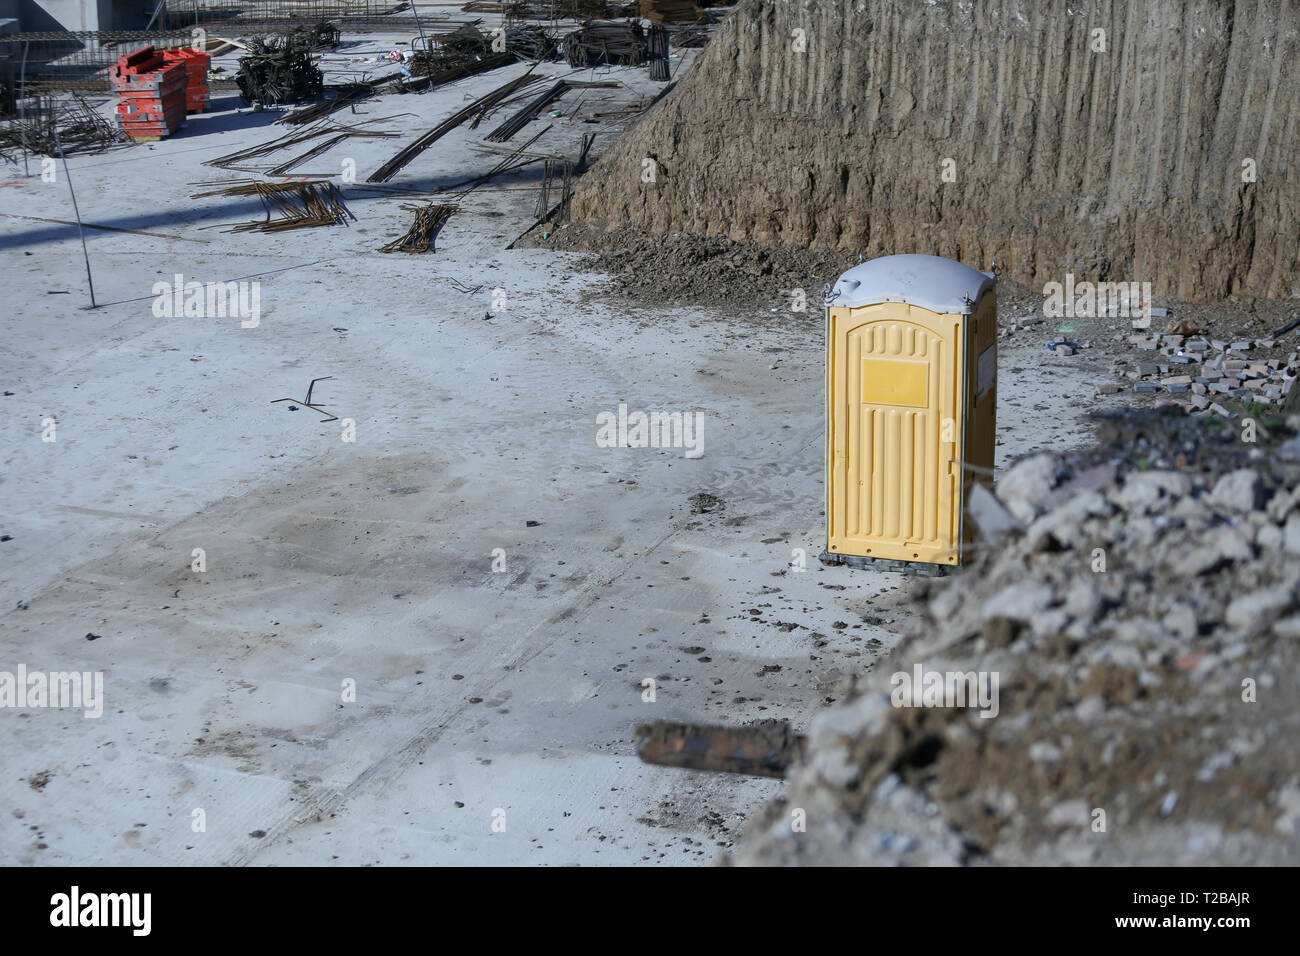 Public toilet cabin on a construction site - Stock Image